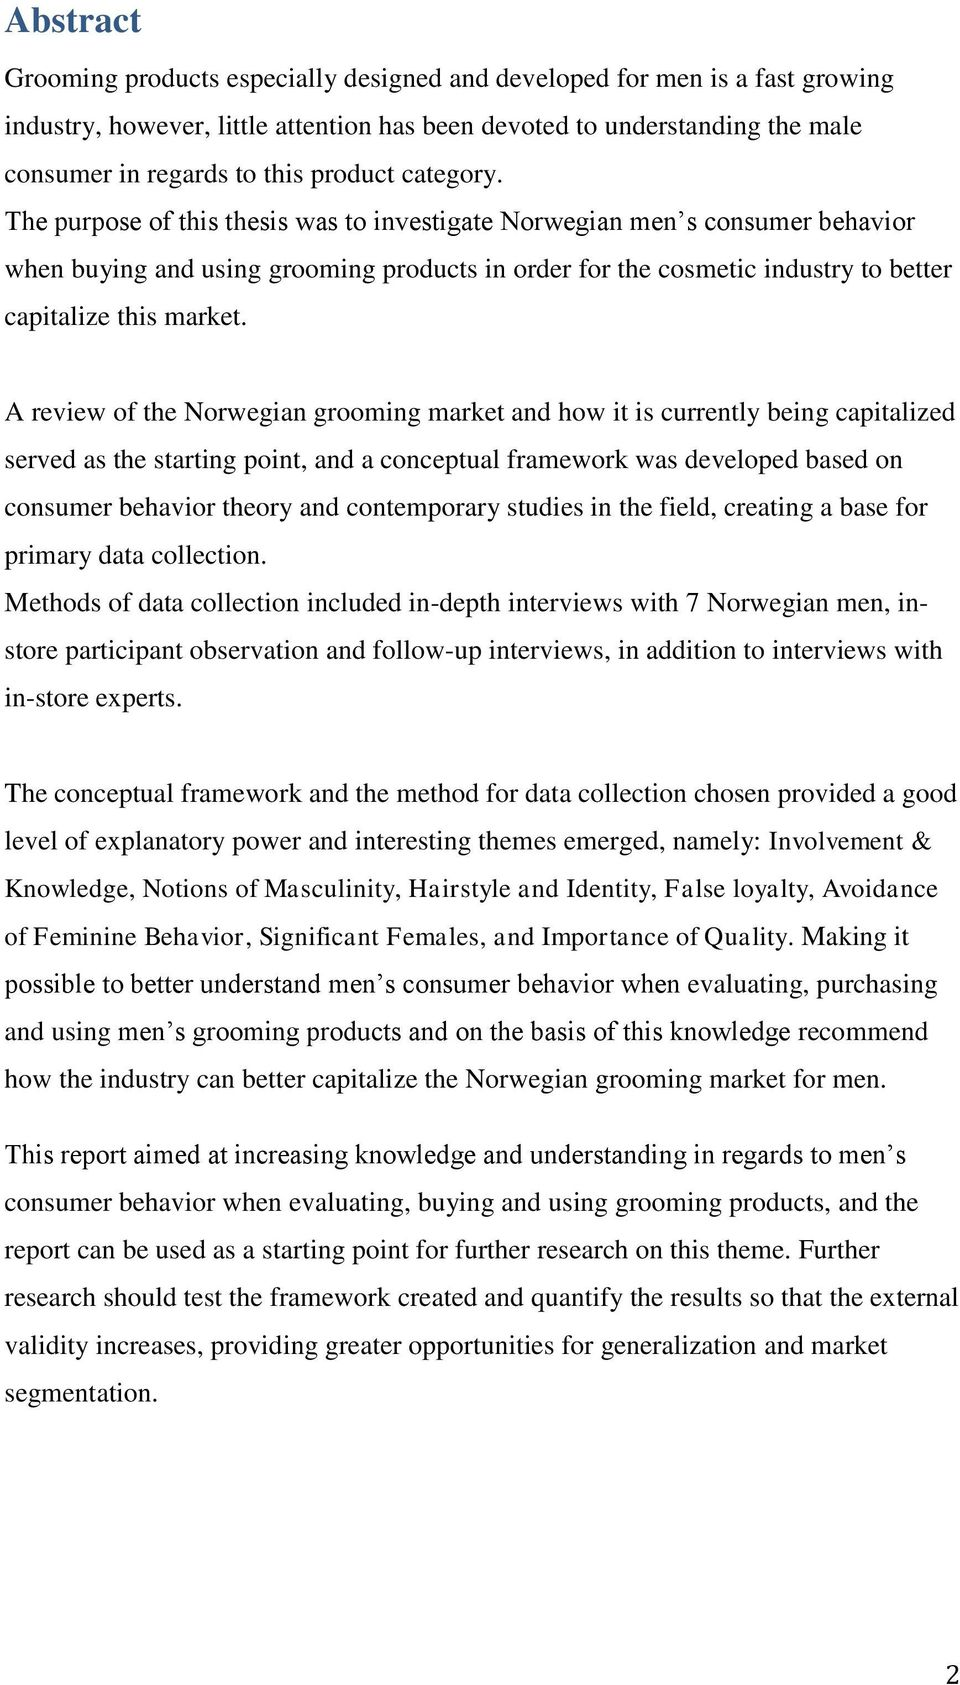 Capitalizing on men s vanity pdf the purpose of this thesis was to investigate norwegian men s consumer behavior when buying and fandeluxe Images